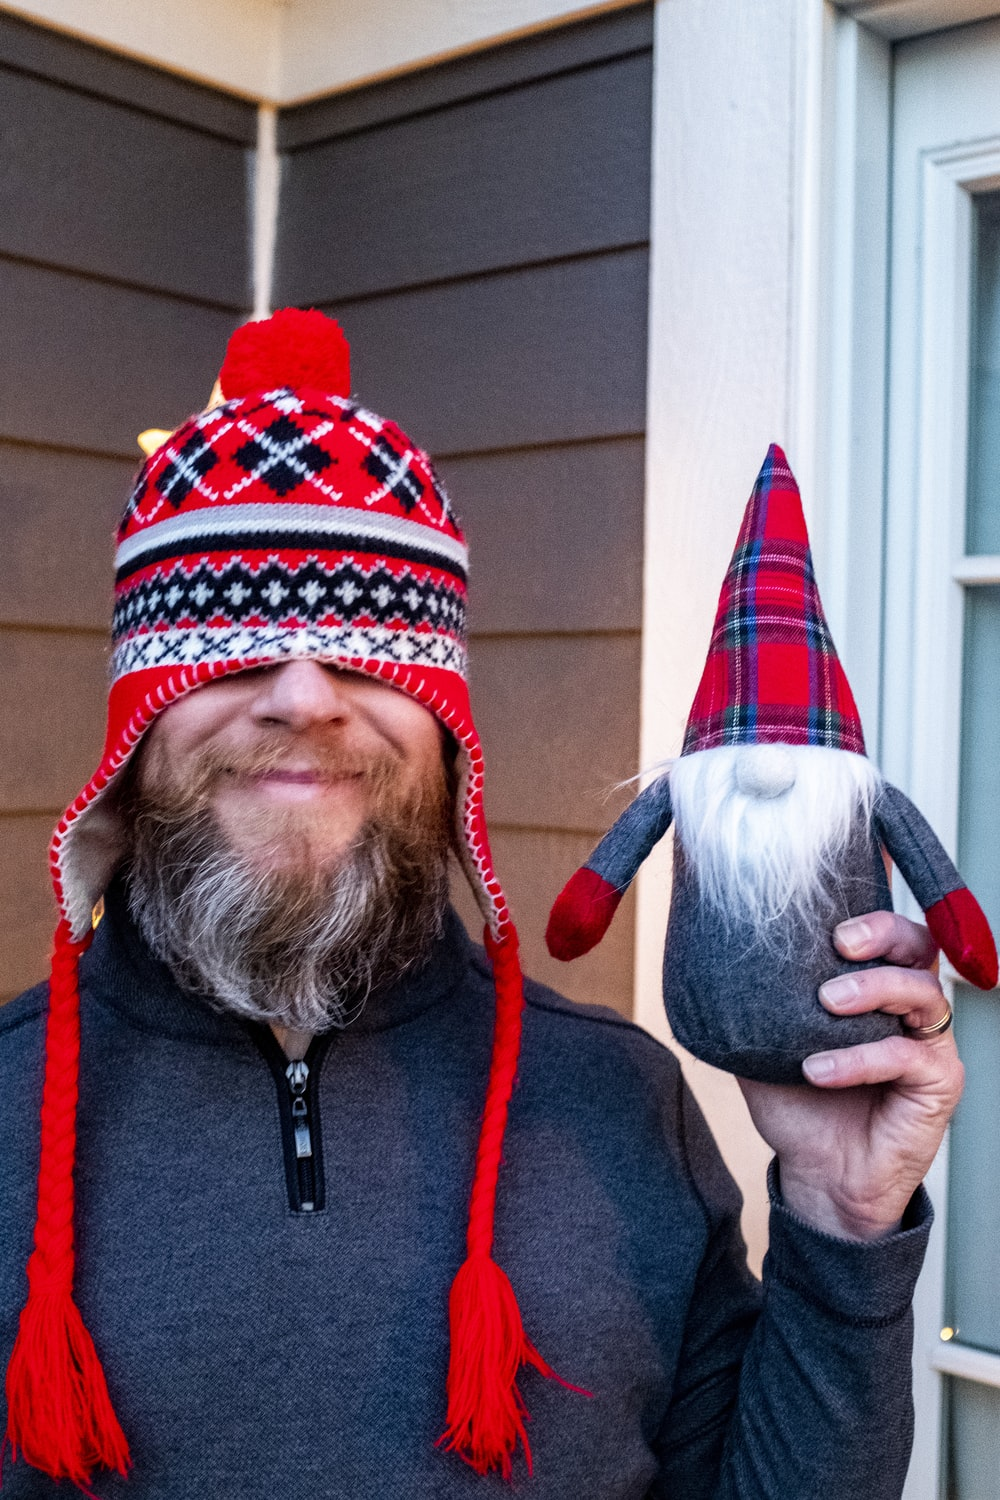 man in red and black knit cap